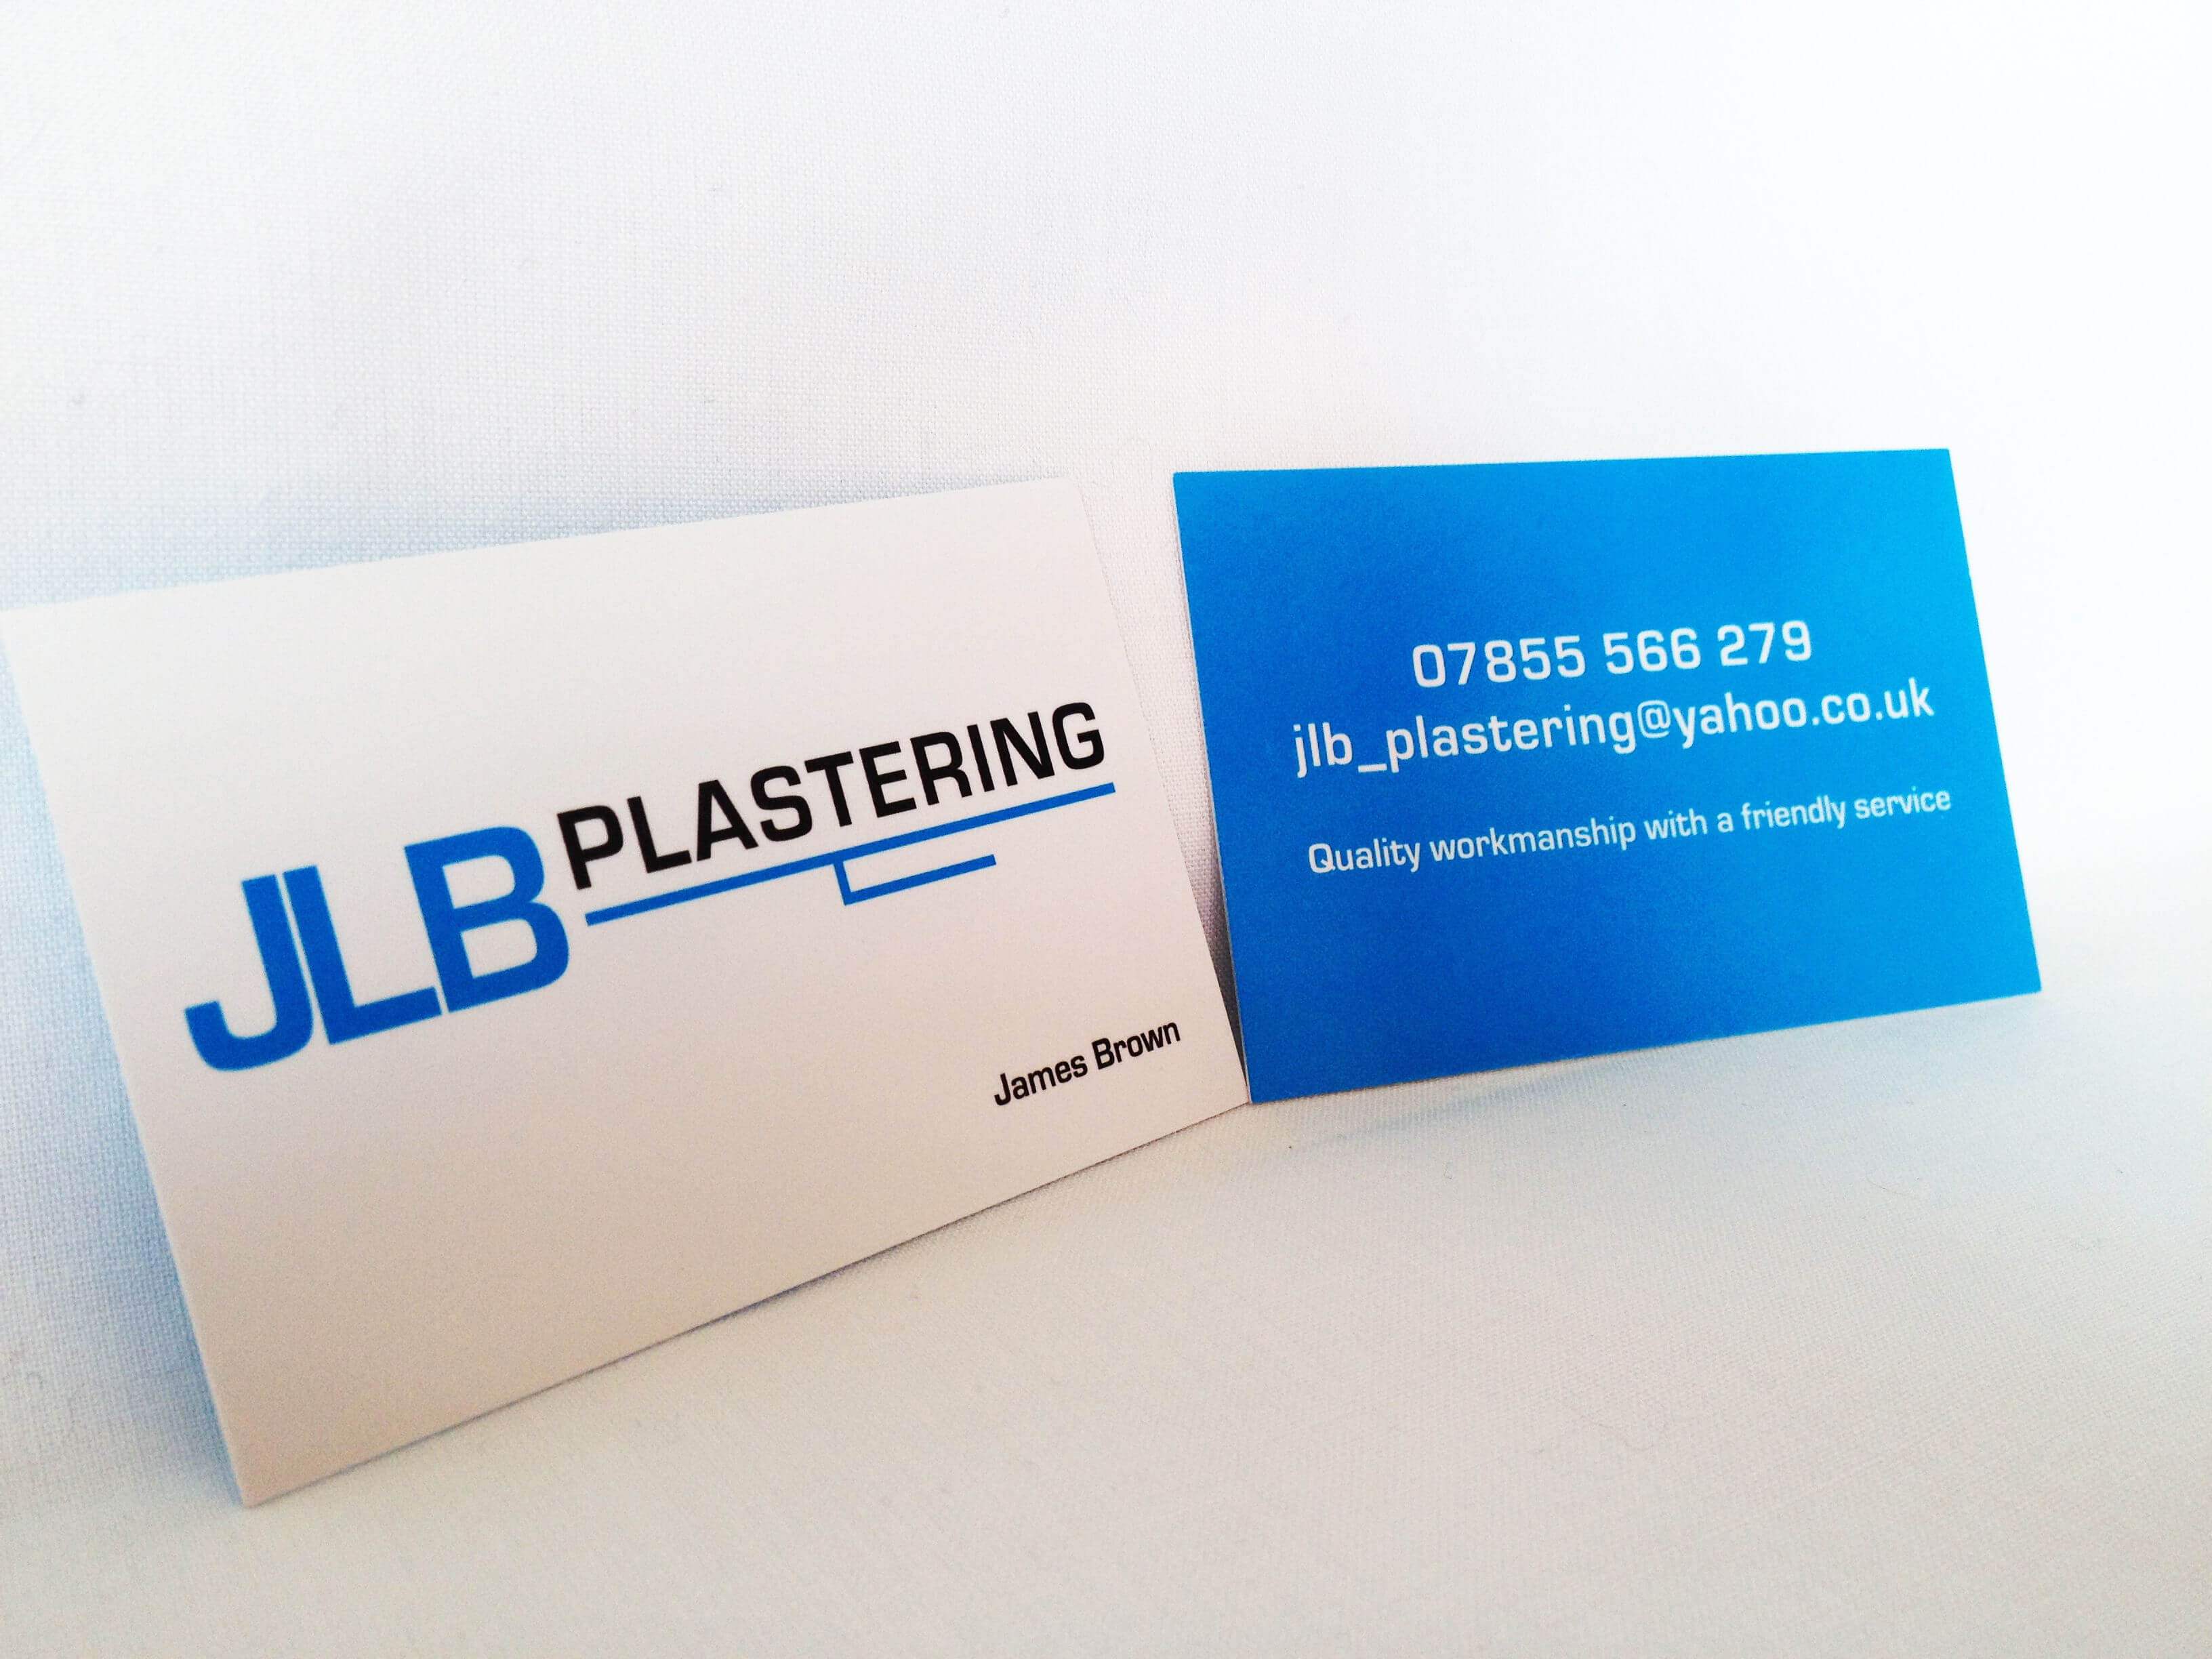 New Jlb Plastering Business Cards And Logo Design | Logos Throughout Plastering Business Cards Templates